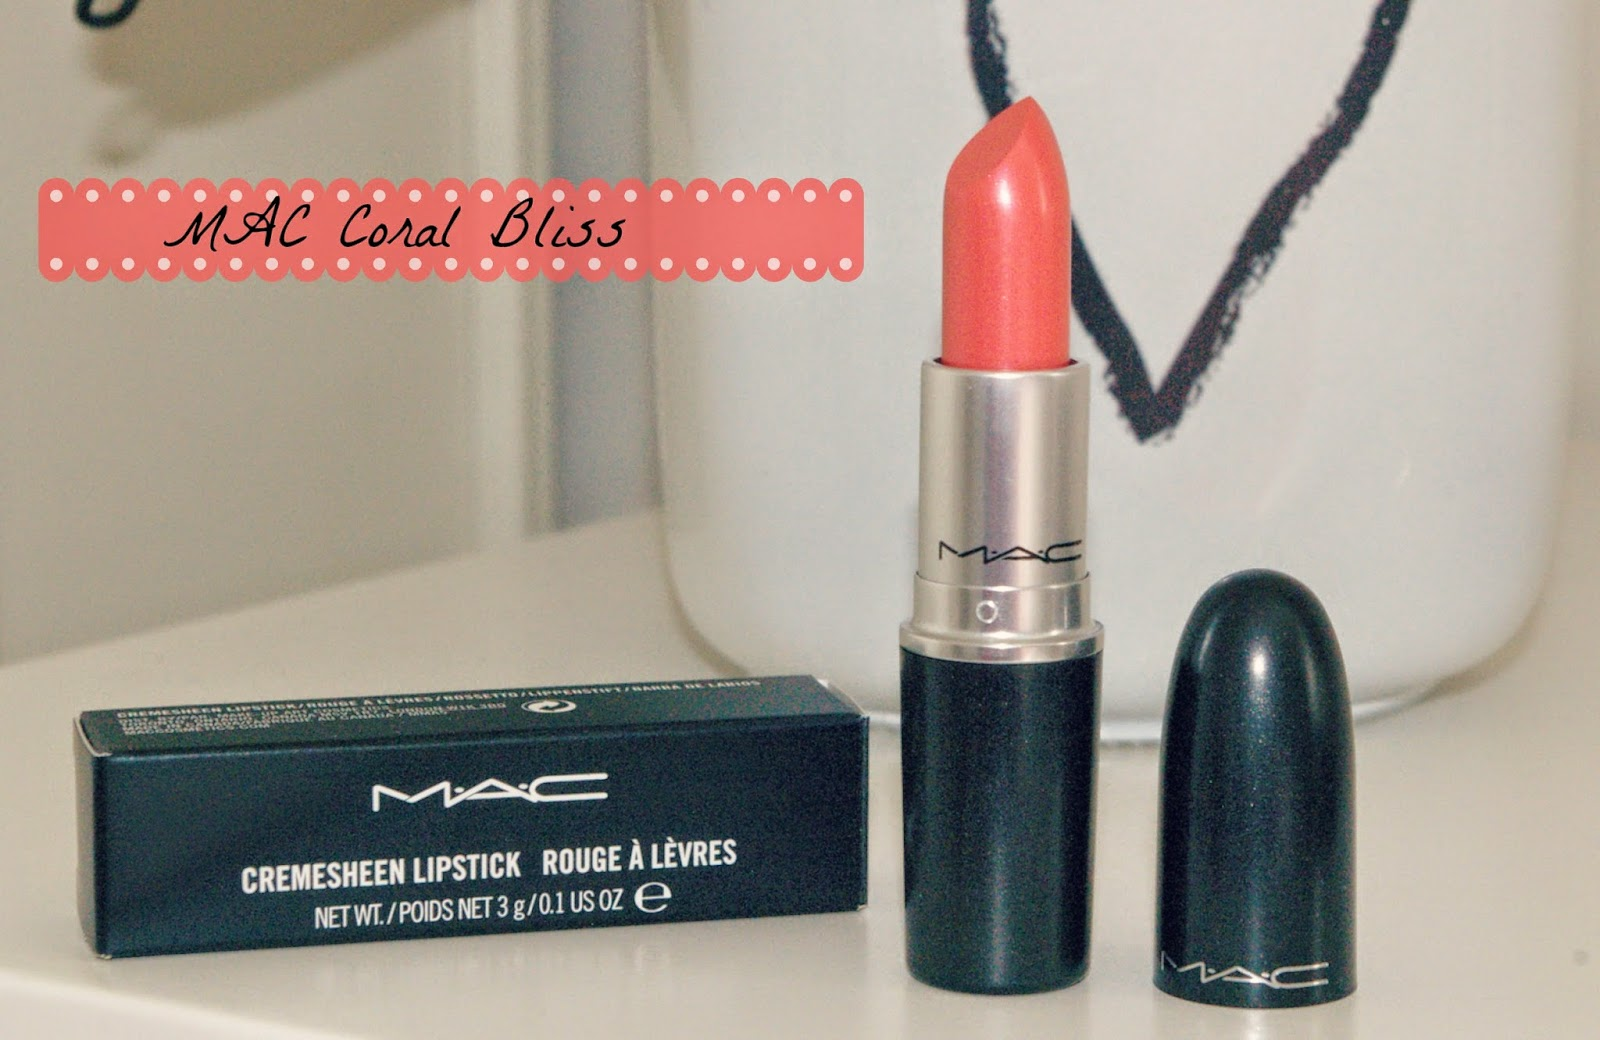 Mac Coral Lipsticks